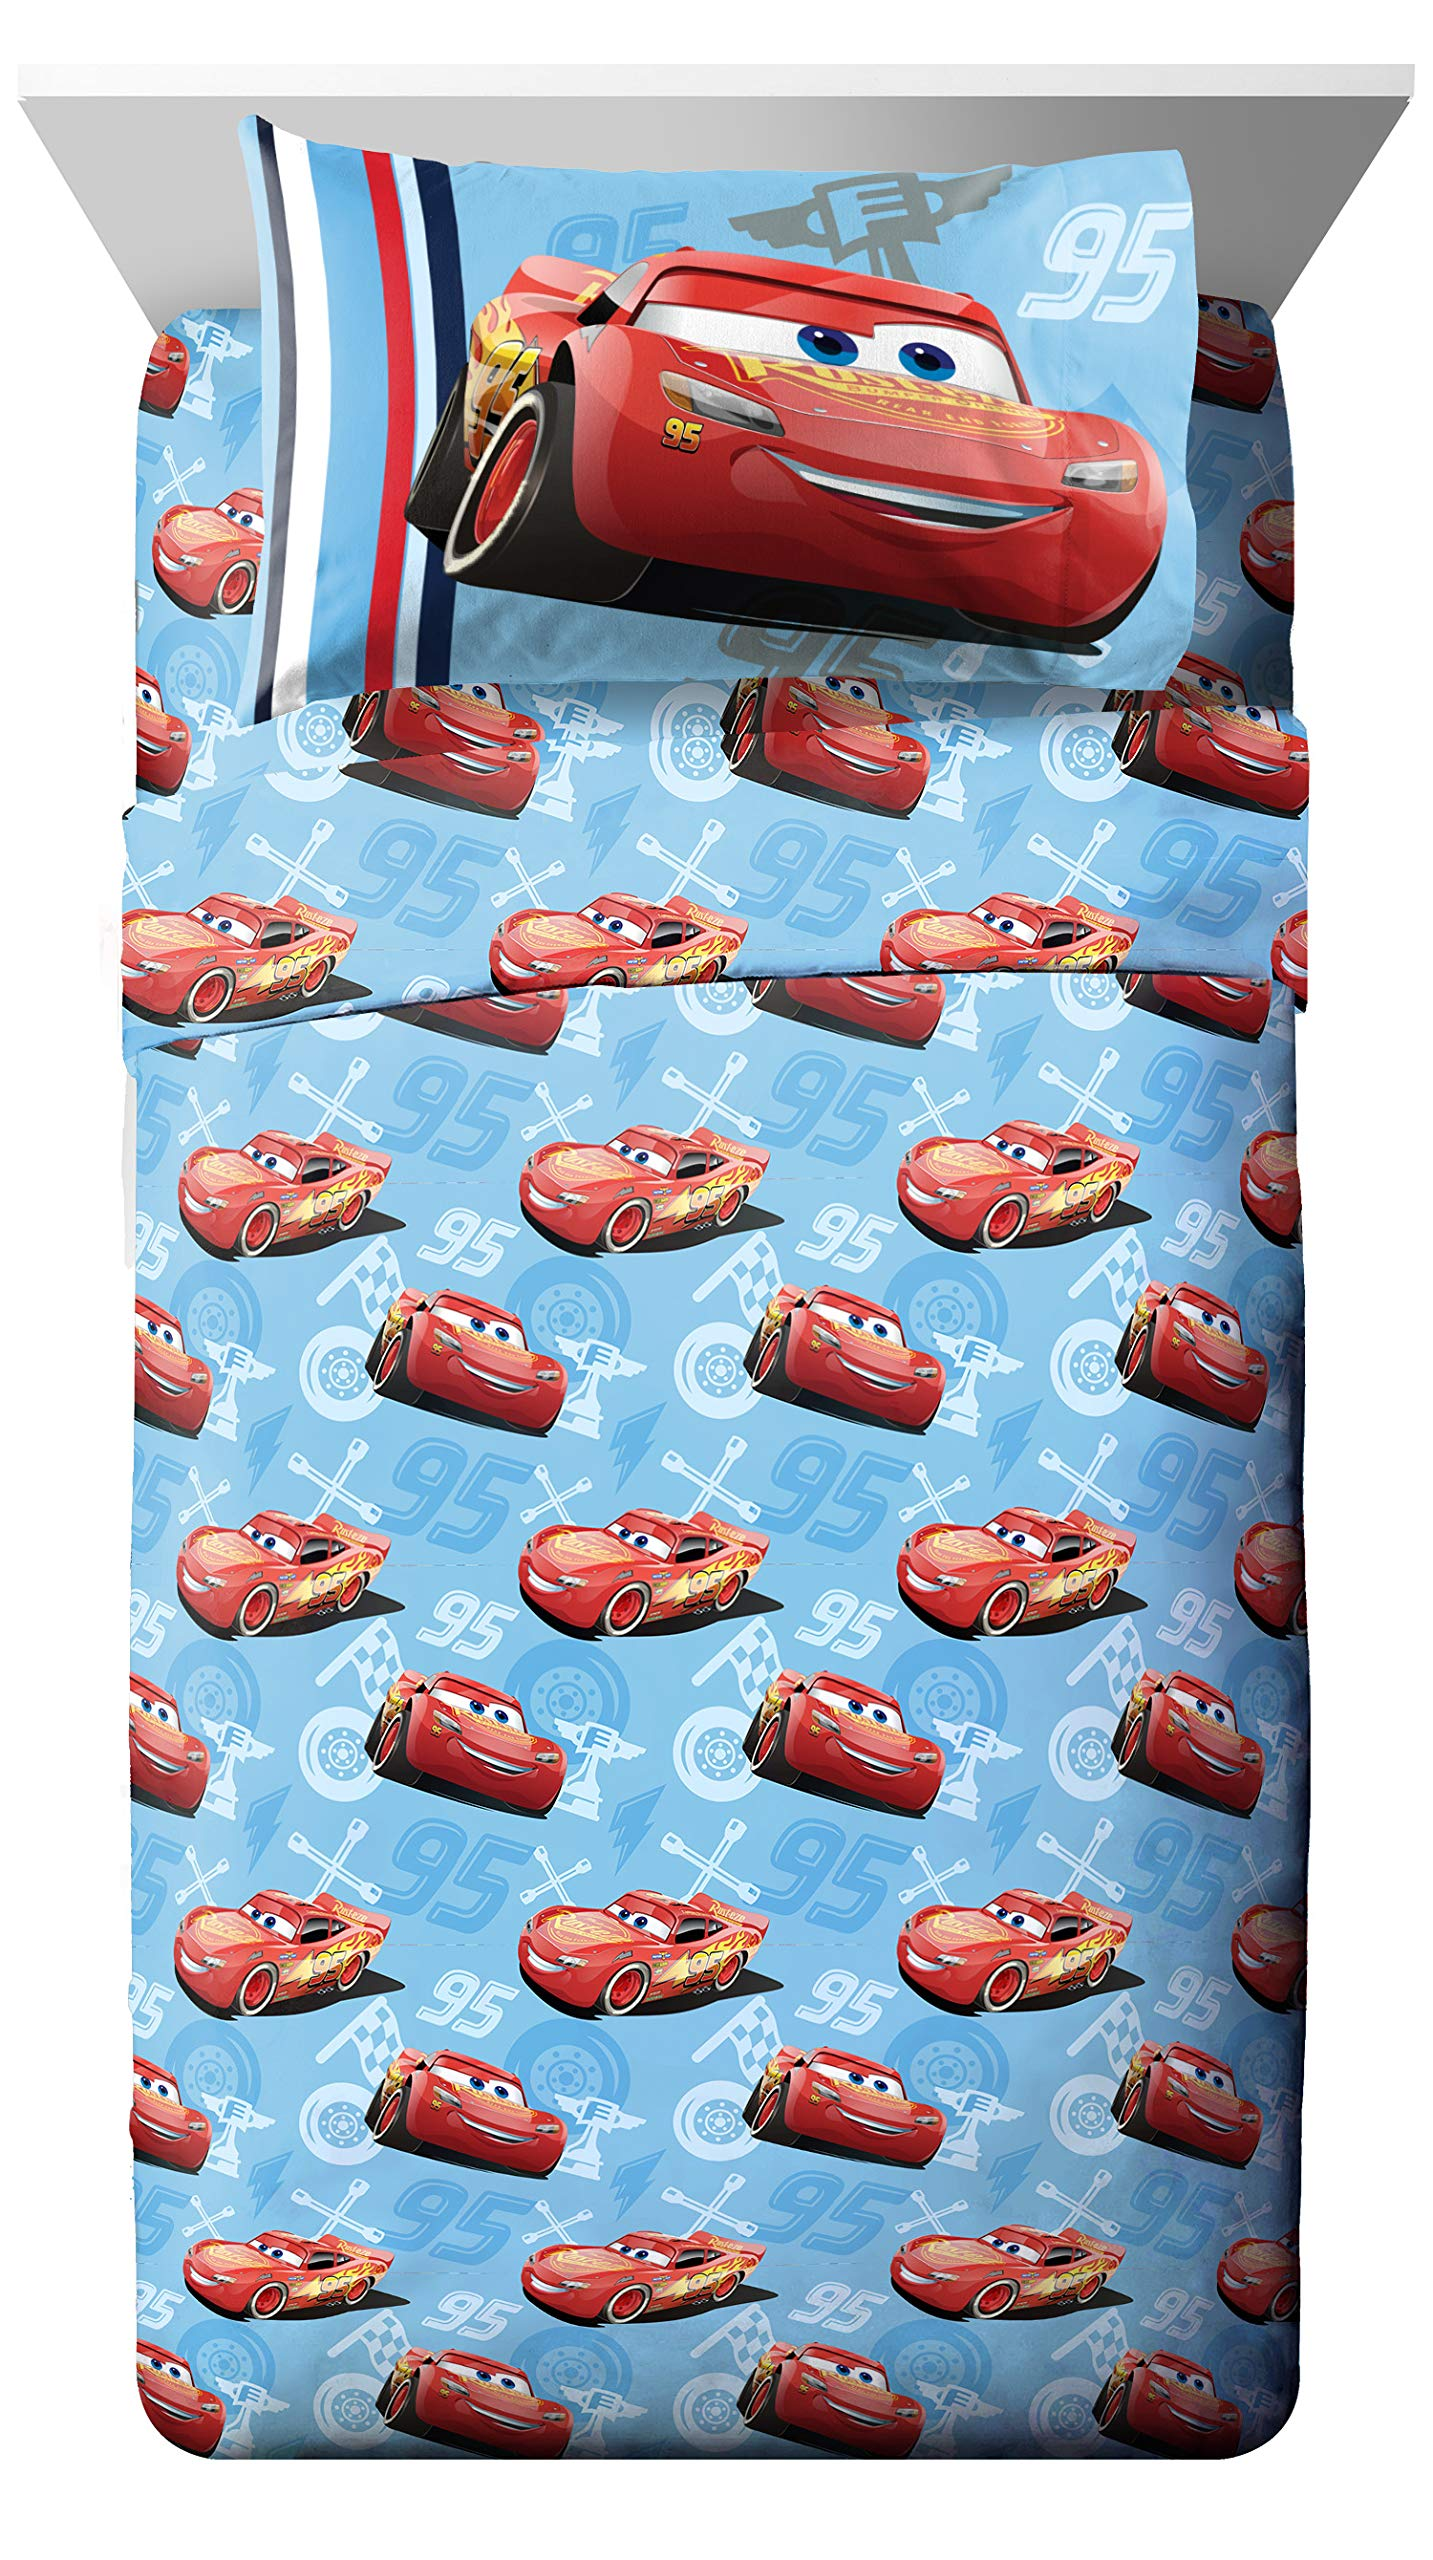 Jay Franco Disney/Pixar Cars 95 Full 4 Piece Blue Sheet Set with Lightning McQueen (Offical Disney/Pixar Product)